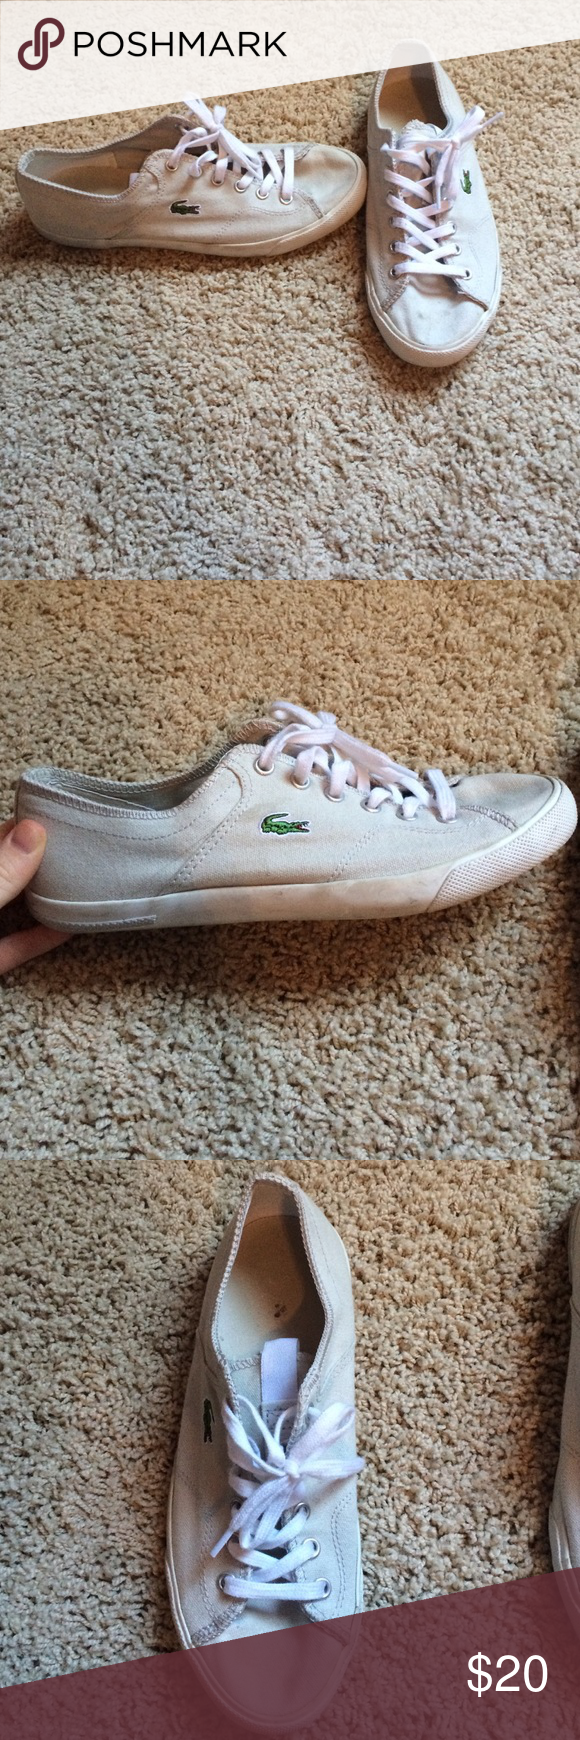 Lacoste sneakers Grey Lacoste sneakers, used condition but look very good! Just wear on the sole of the shoe Lacoste Shoes Sneakers